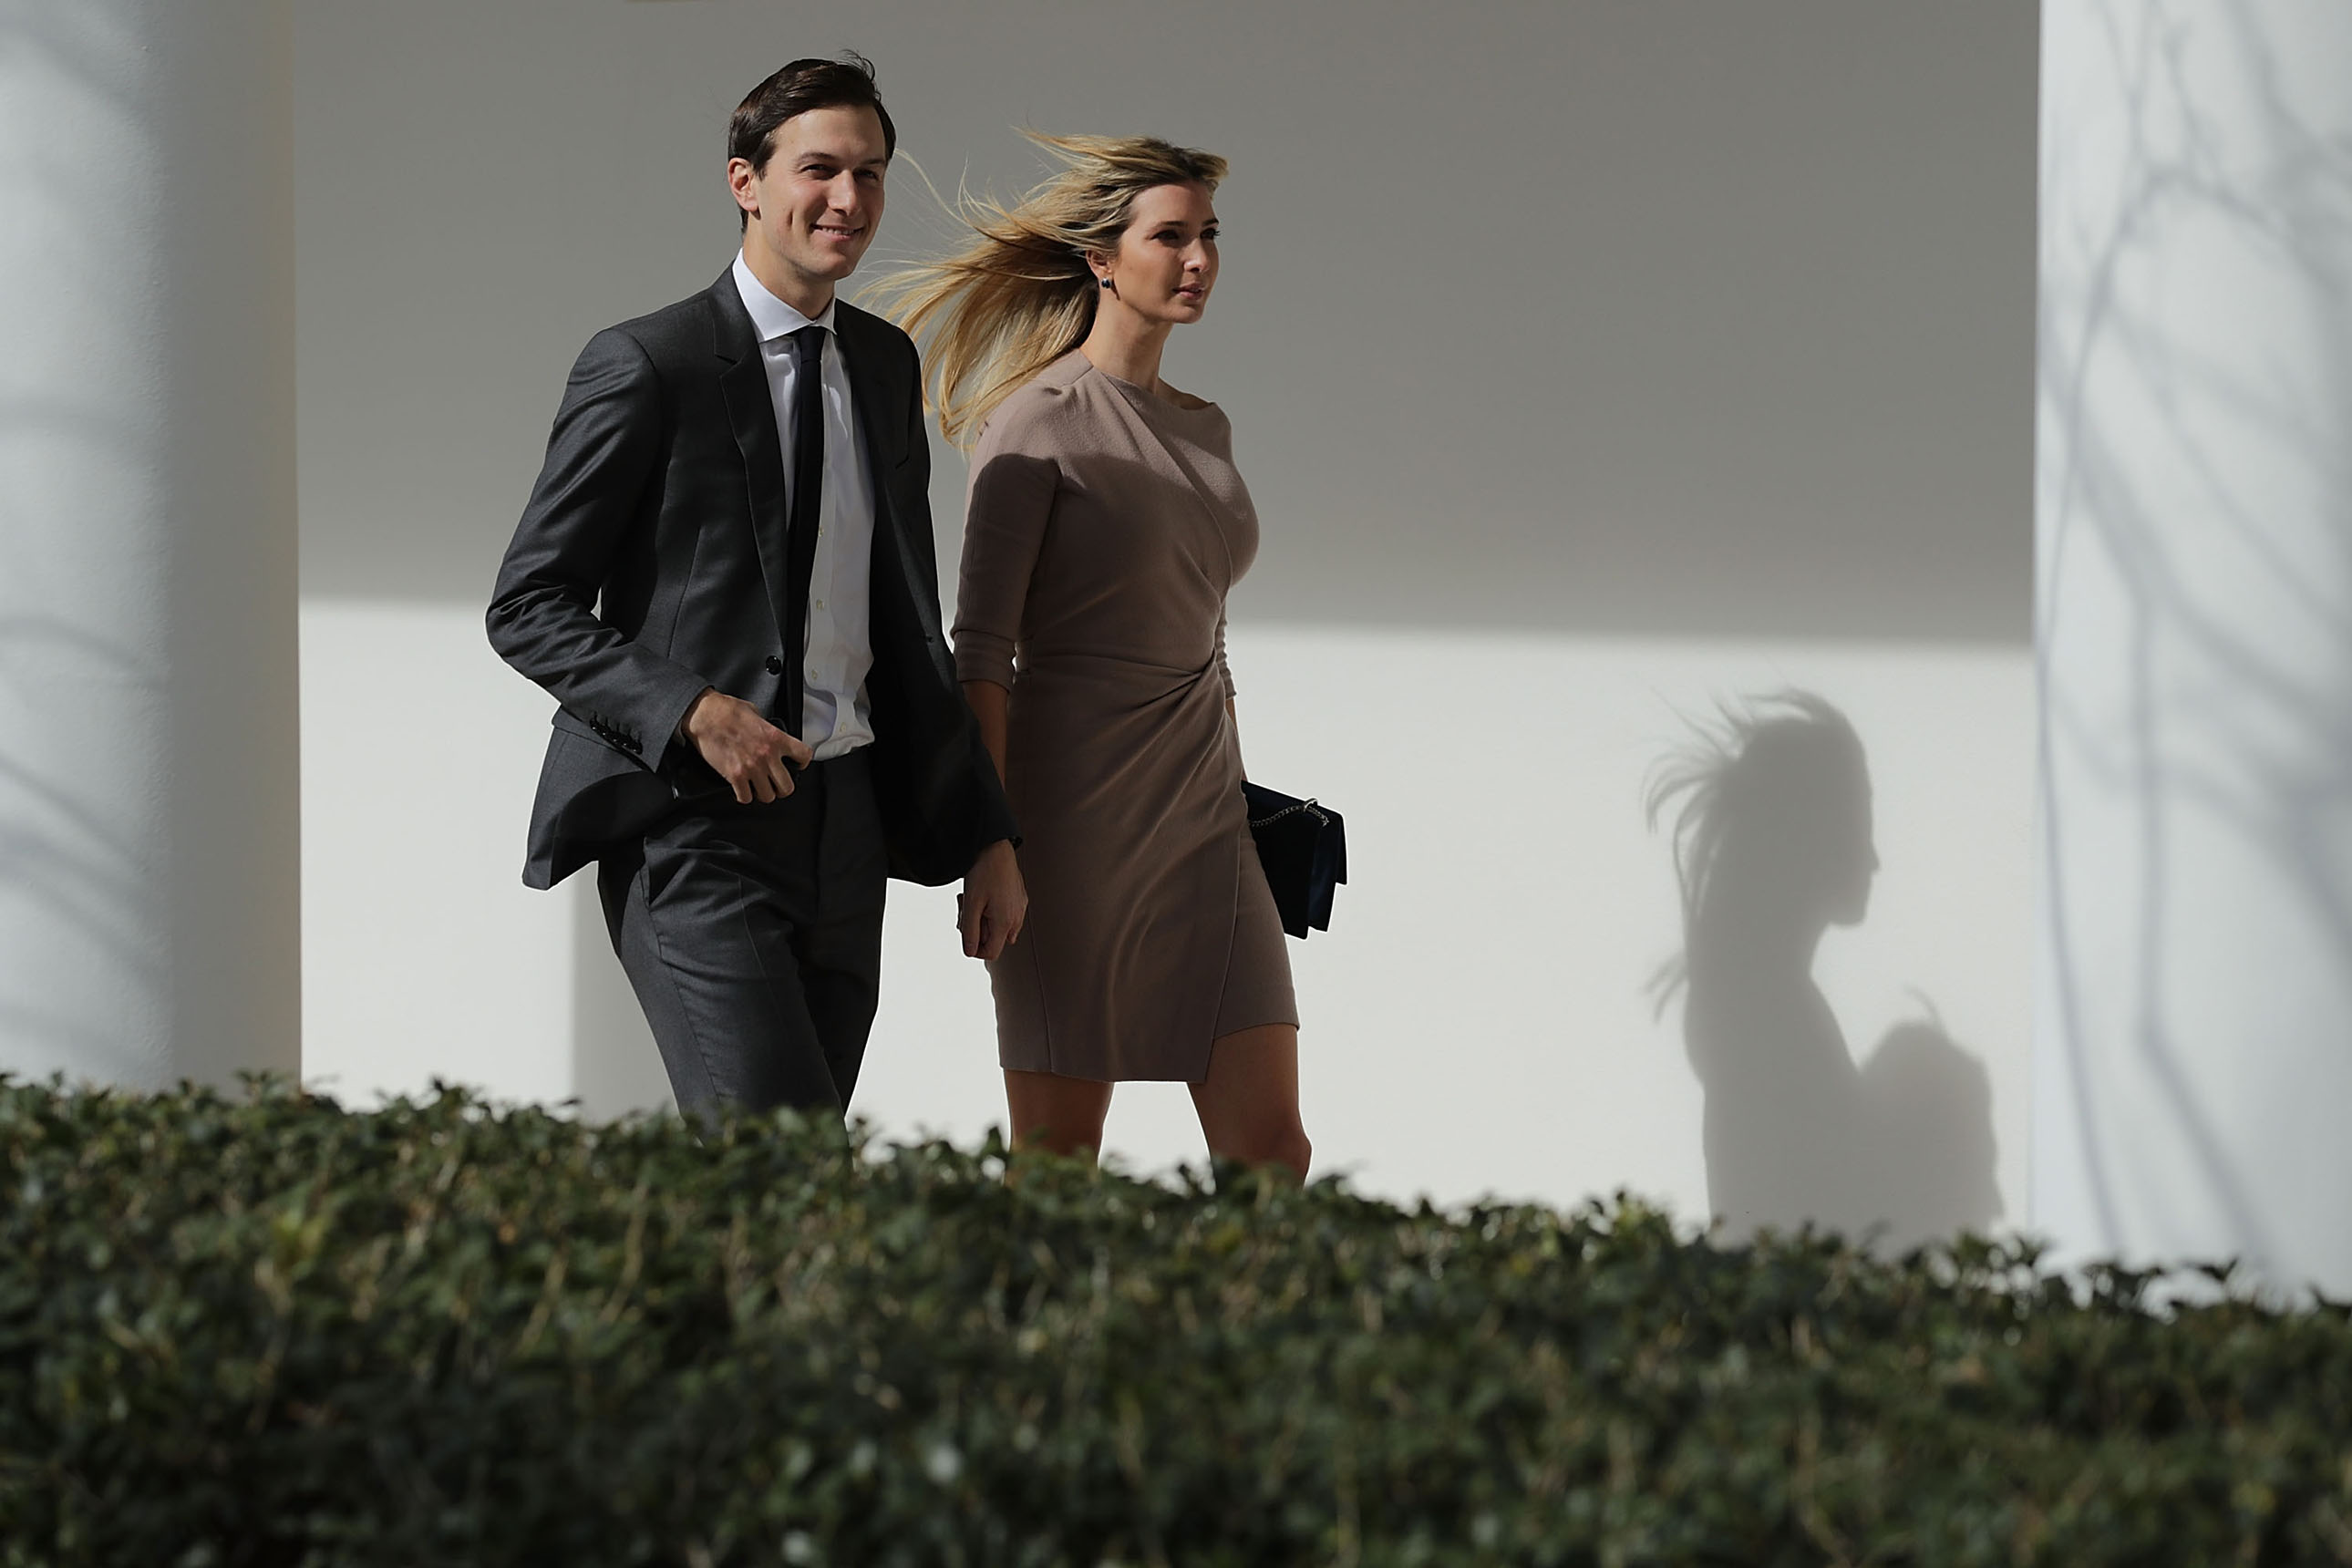 Ivanka Trump and Jared Kushner walk down the West Wing Colonnade following a bilateral meeting between Trump and Japanese Prime Minister Shinzo Abe Feb. 10, 2017 in Washington, D.C.